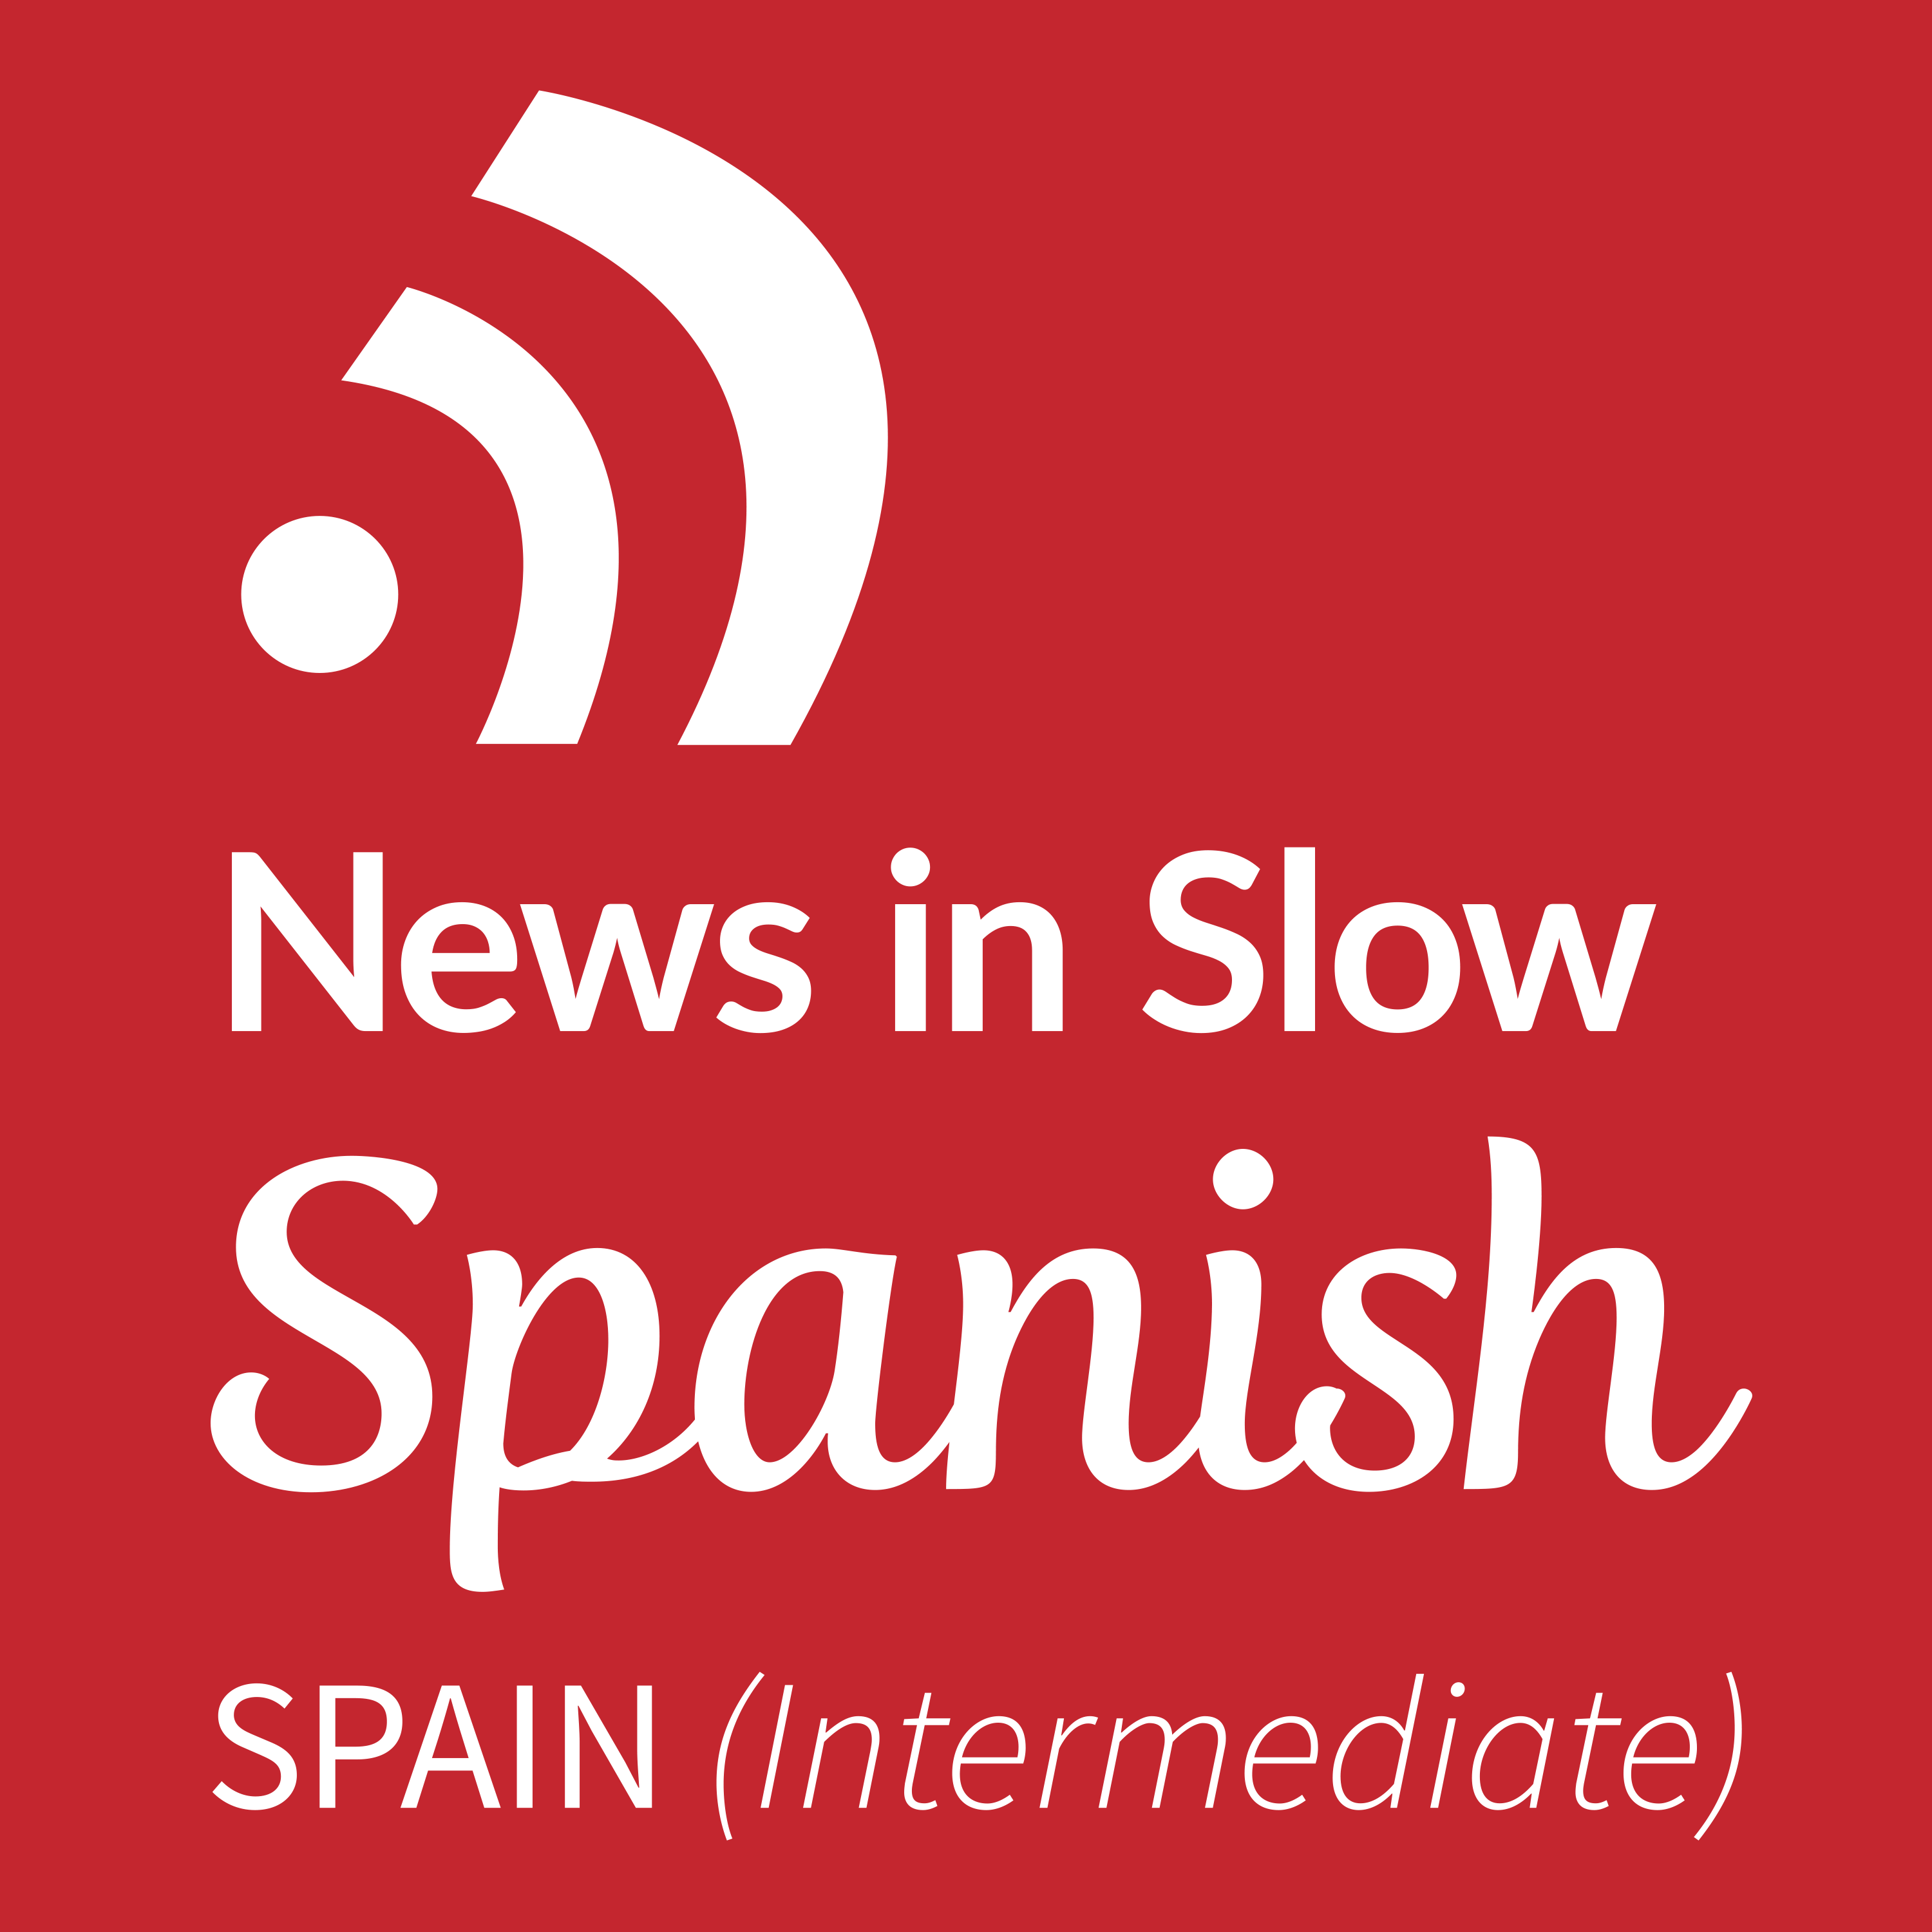 News in Slow Spanish - #383 - Learn Spanish through current events